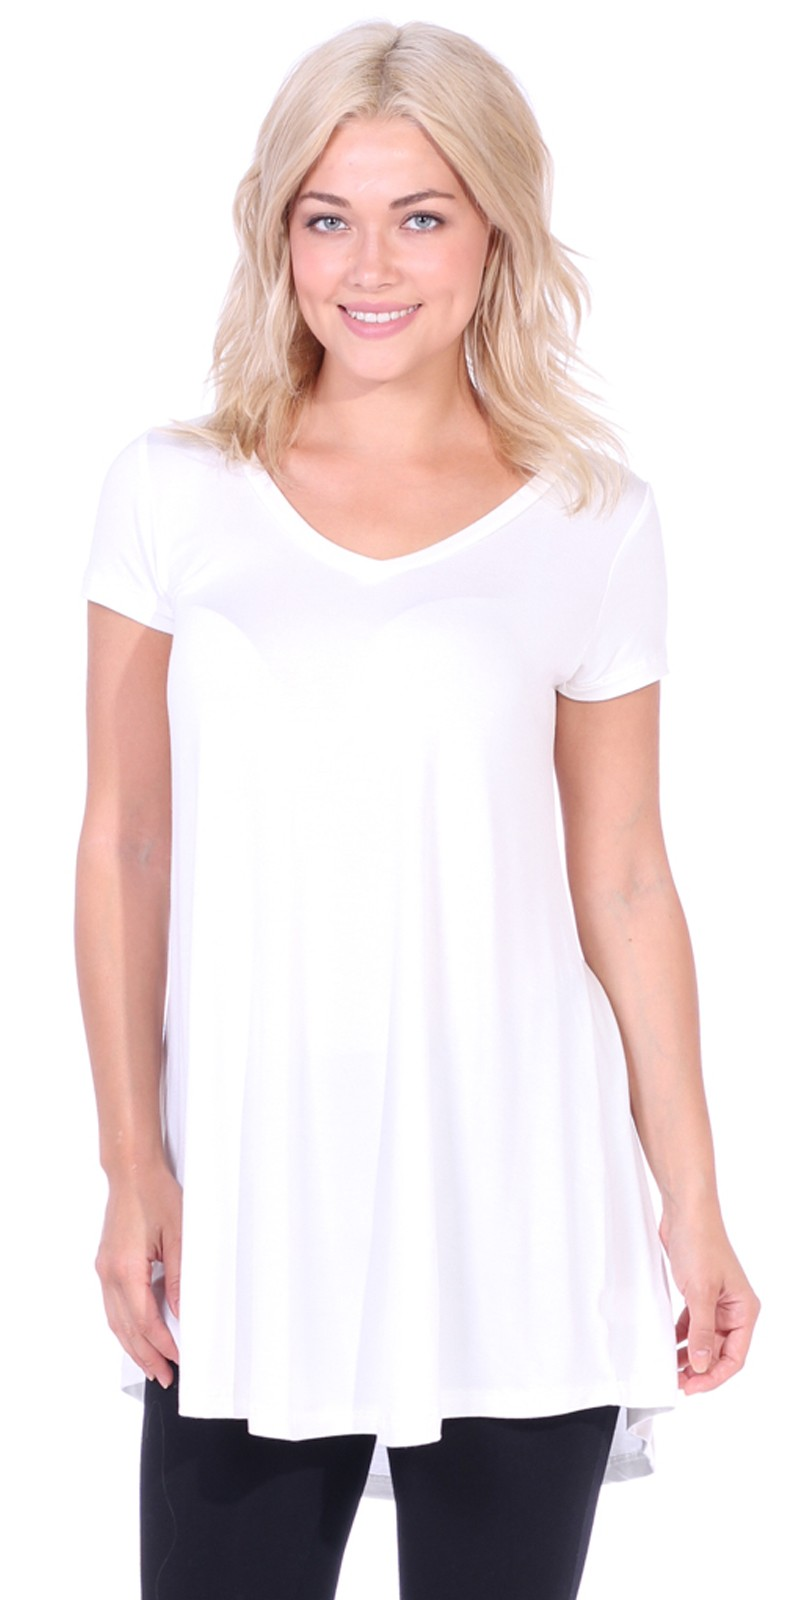 Women's Tunic Top Dress Short Sleeve - Wear With Leggings in Regular and Plus Size - Made In USA - Pearl